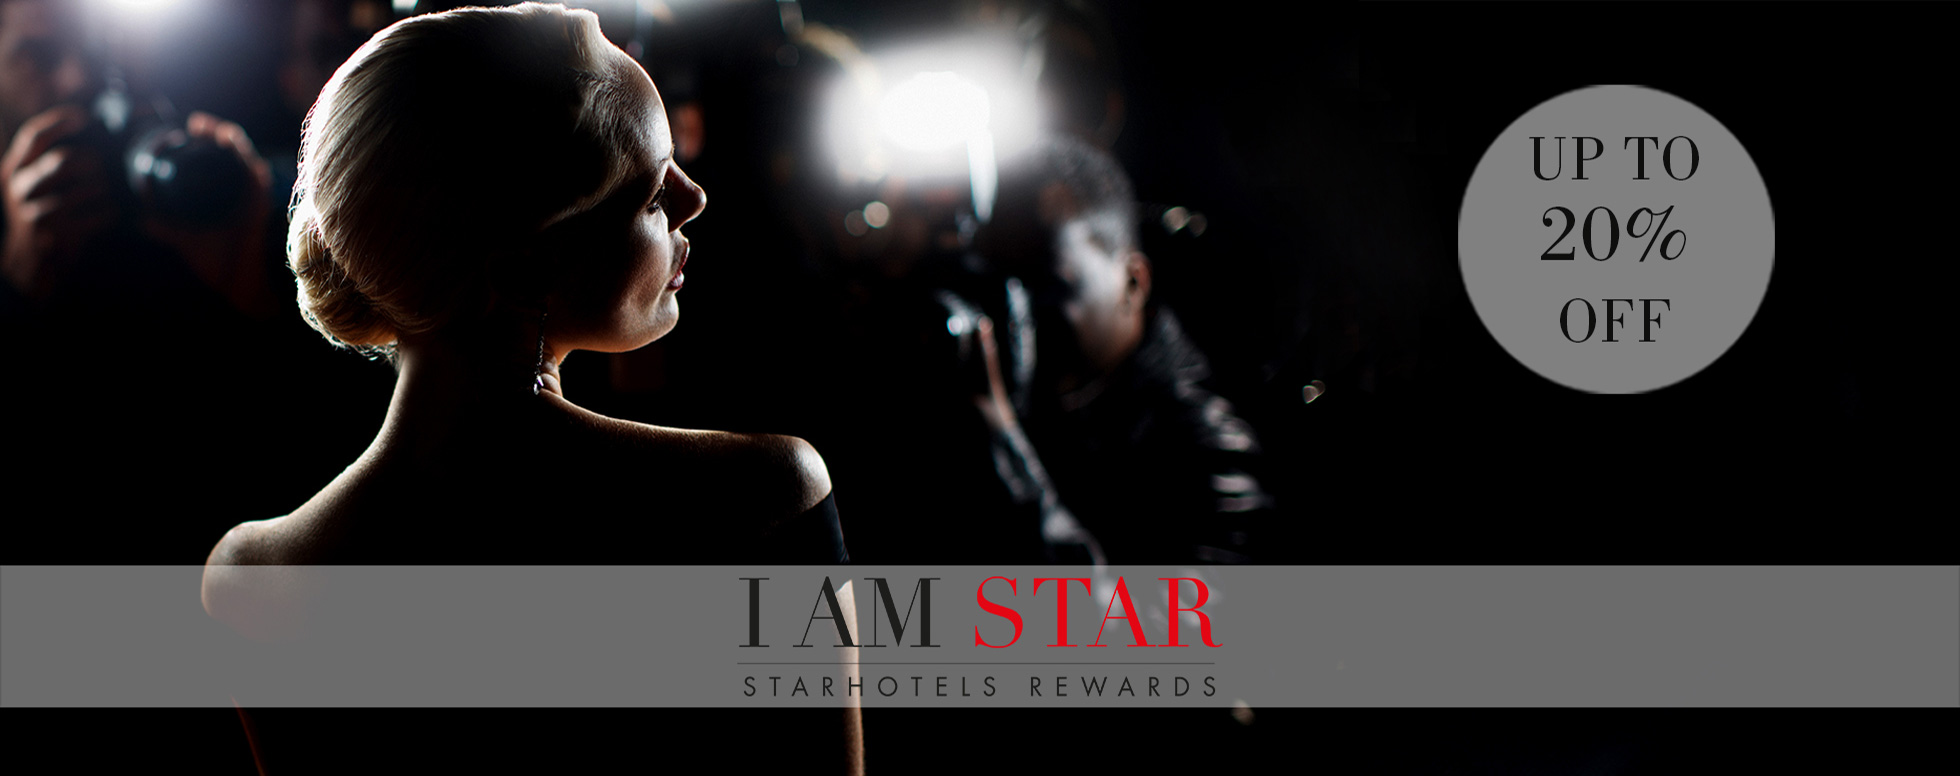 up to 20% off with i am star. Join now!